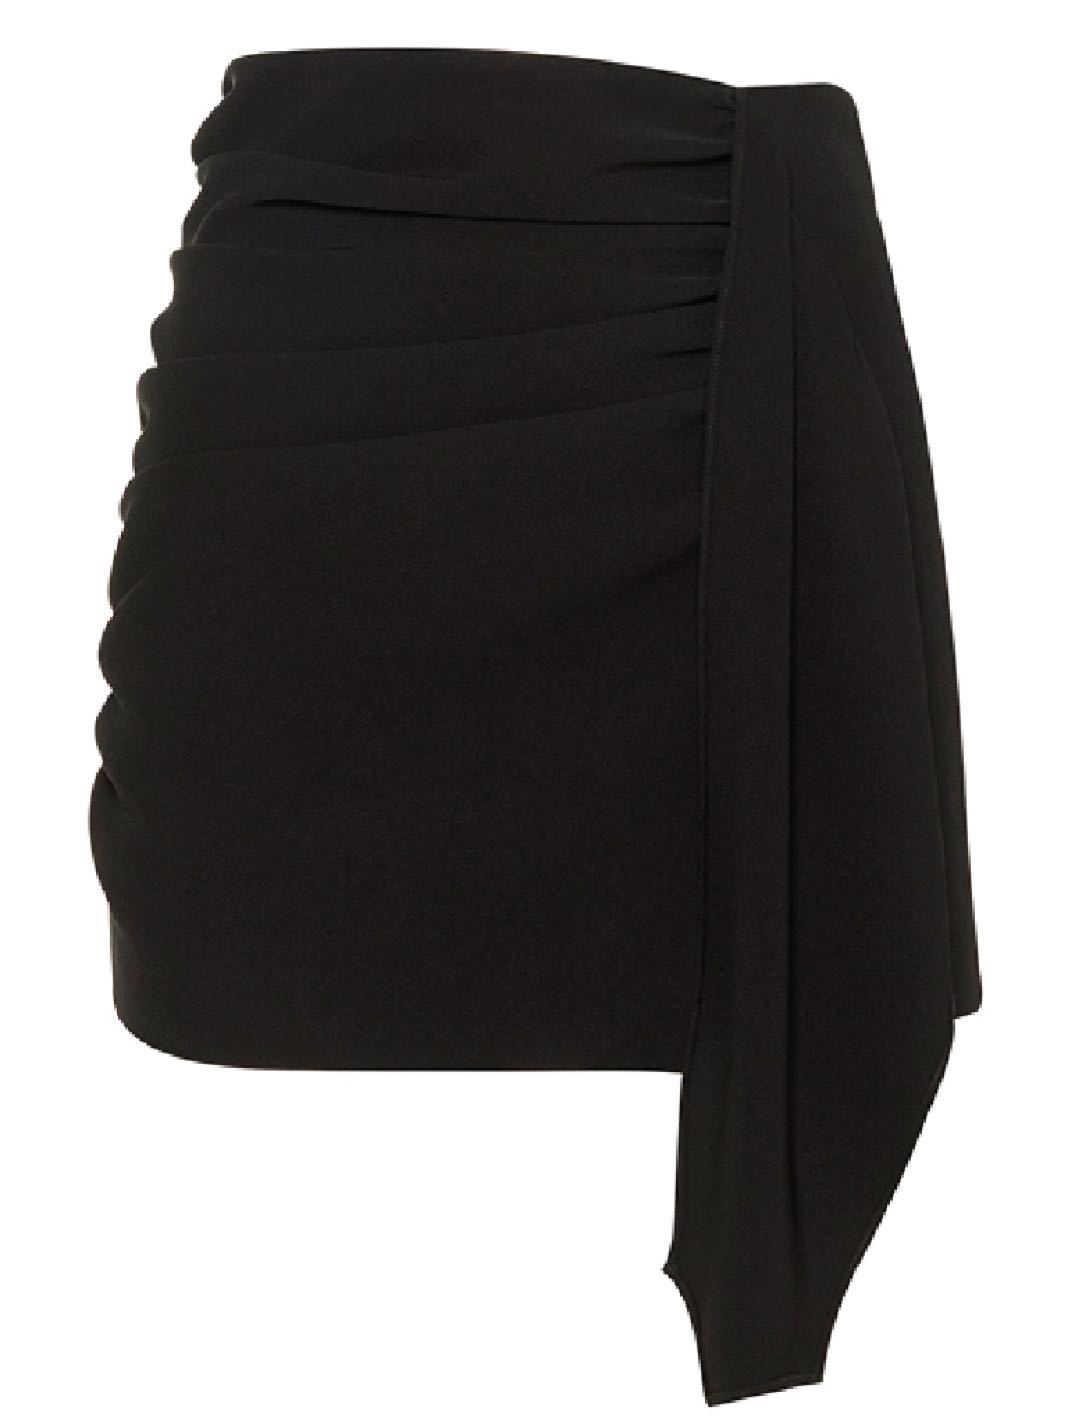 Lisbona Short Cady Skirt - The Bobby Boga